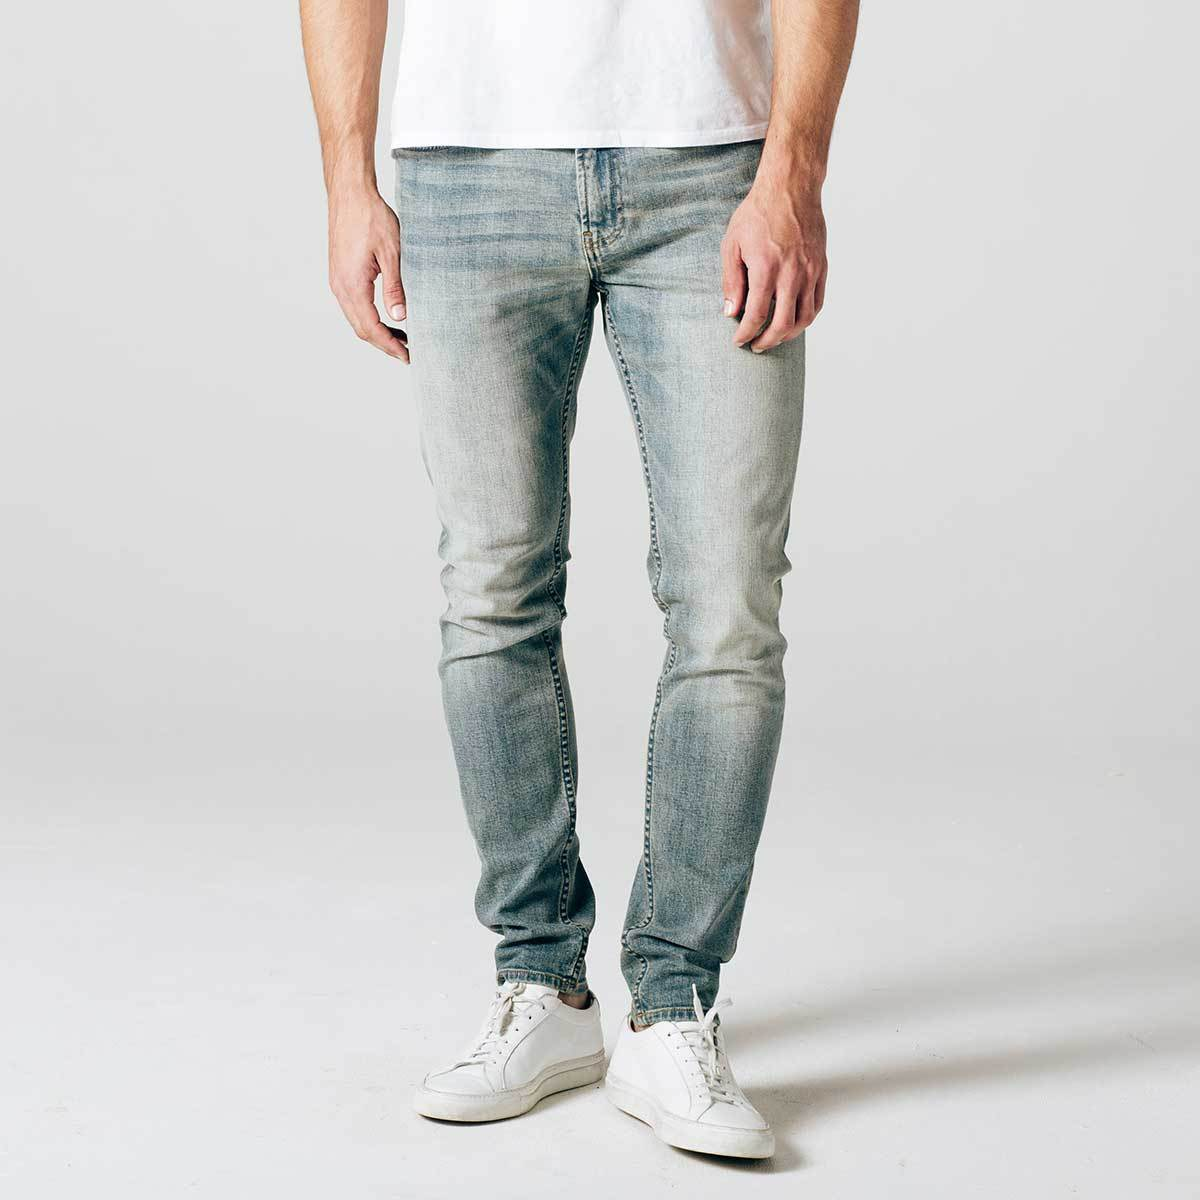 how to make light wash jeans